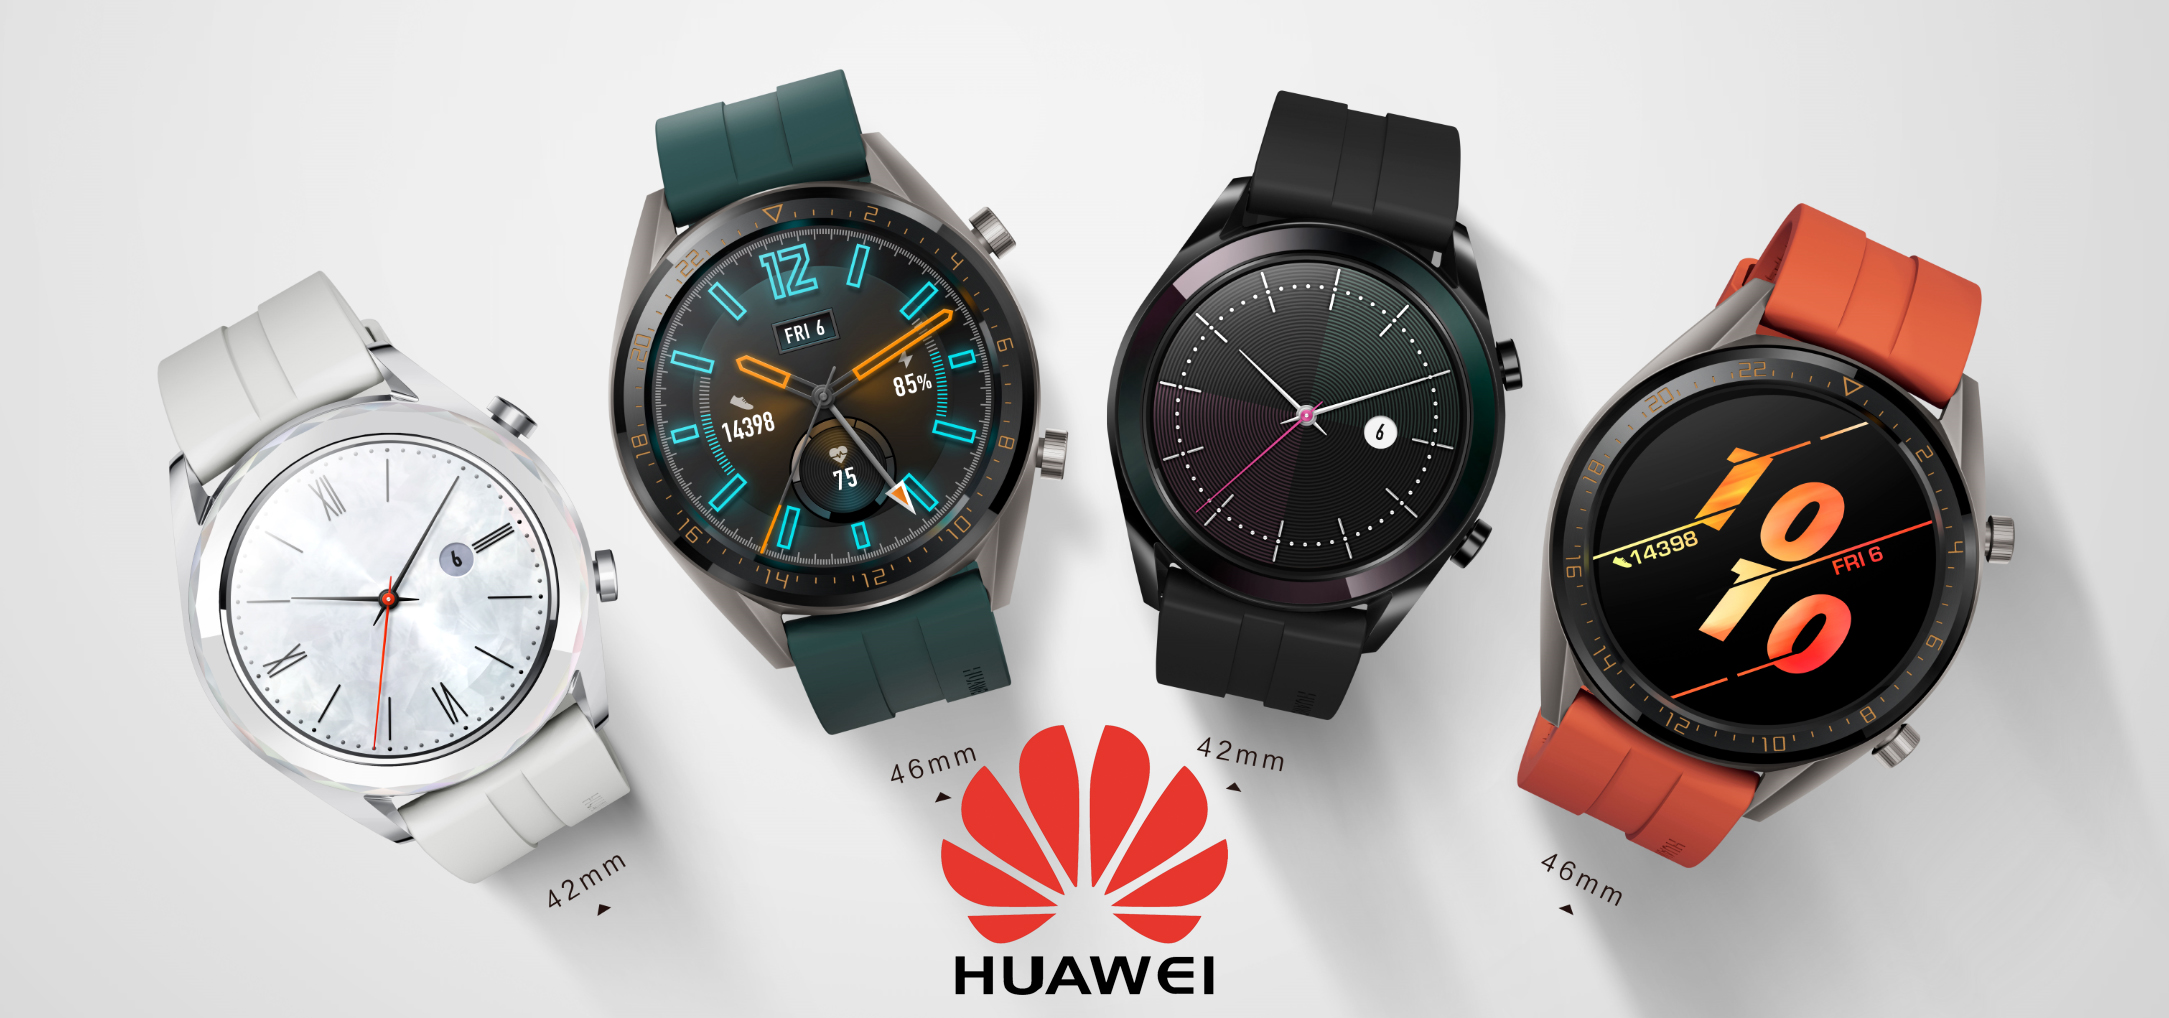 HUAWEI Watch GT - 2-week battery life, fitness and wellness tracking, and new Active and Elegant variants - Alvinology